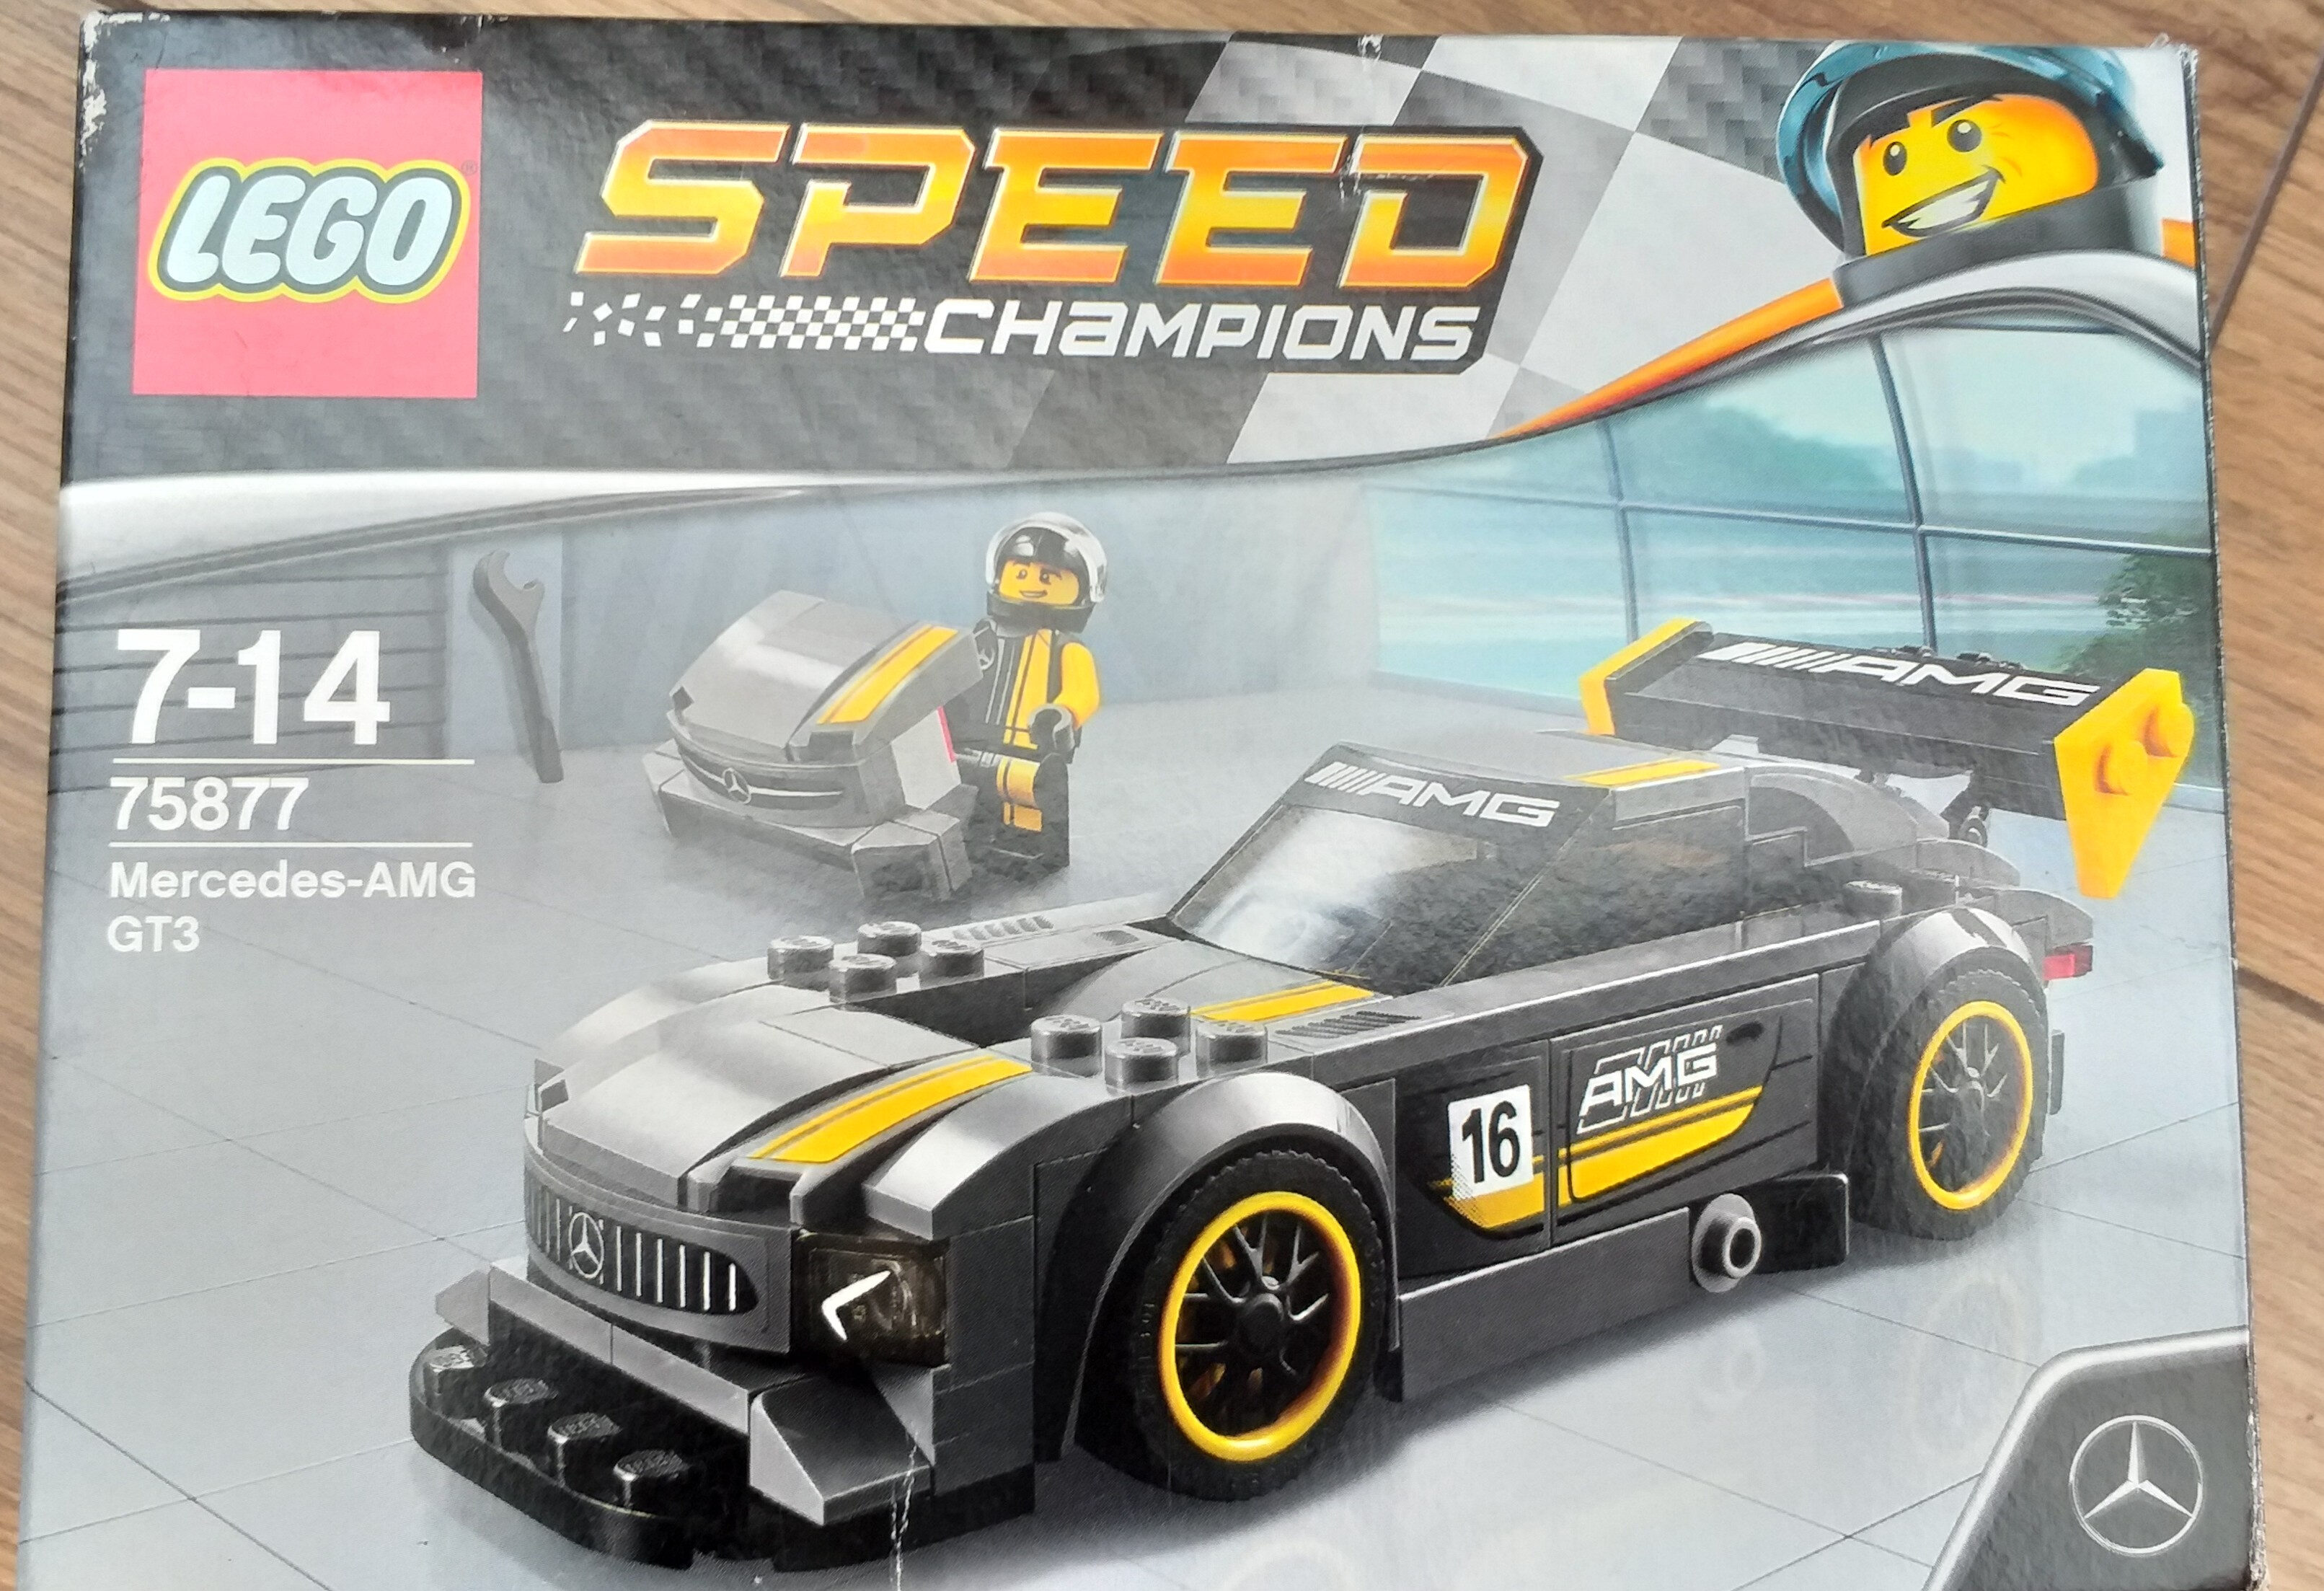 75877 - Mercedes amg gt3 (Speed Champion) - Product - fr